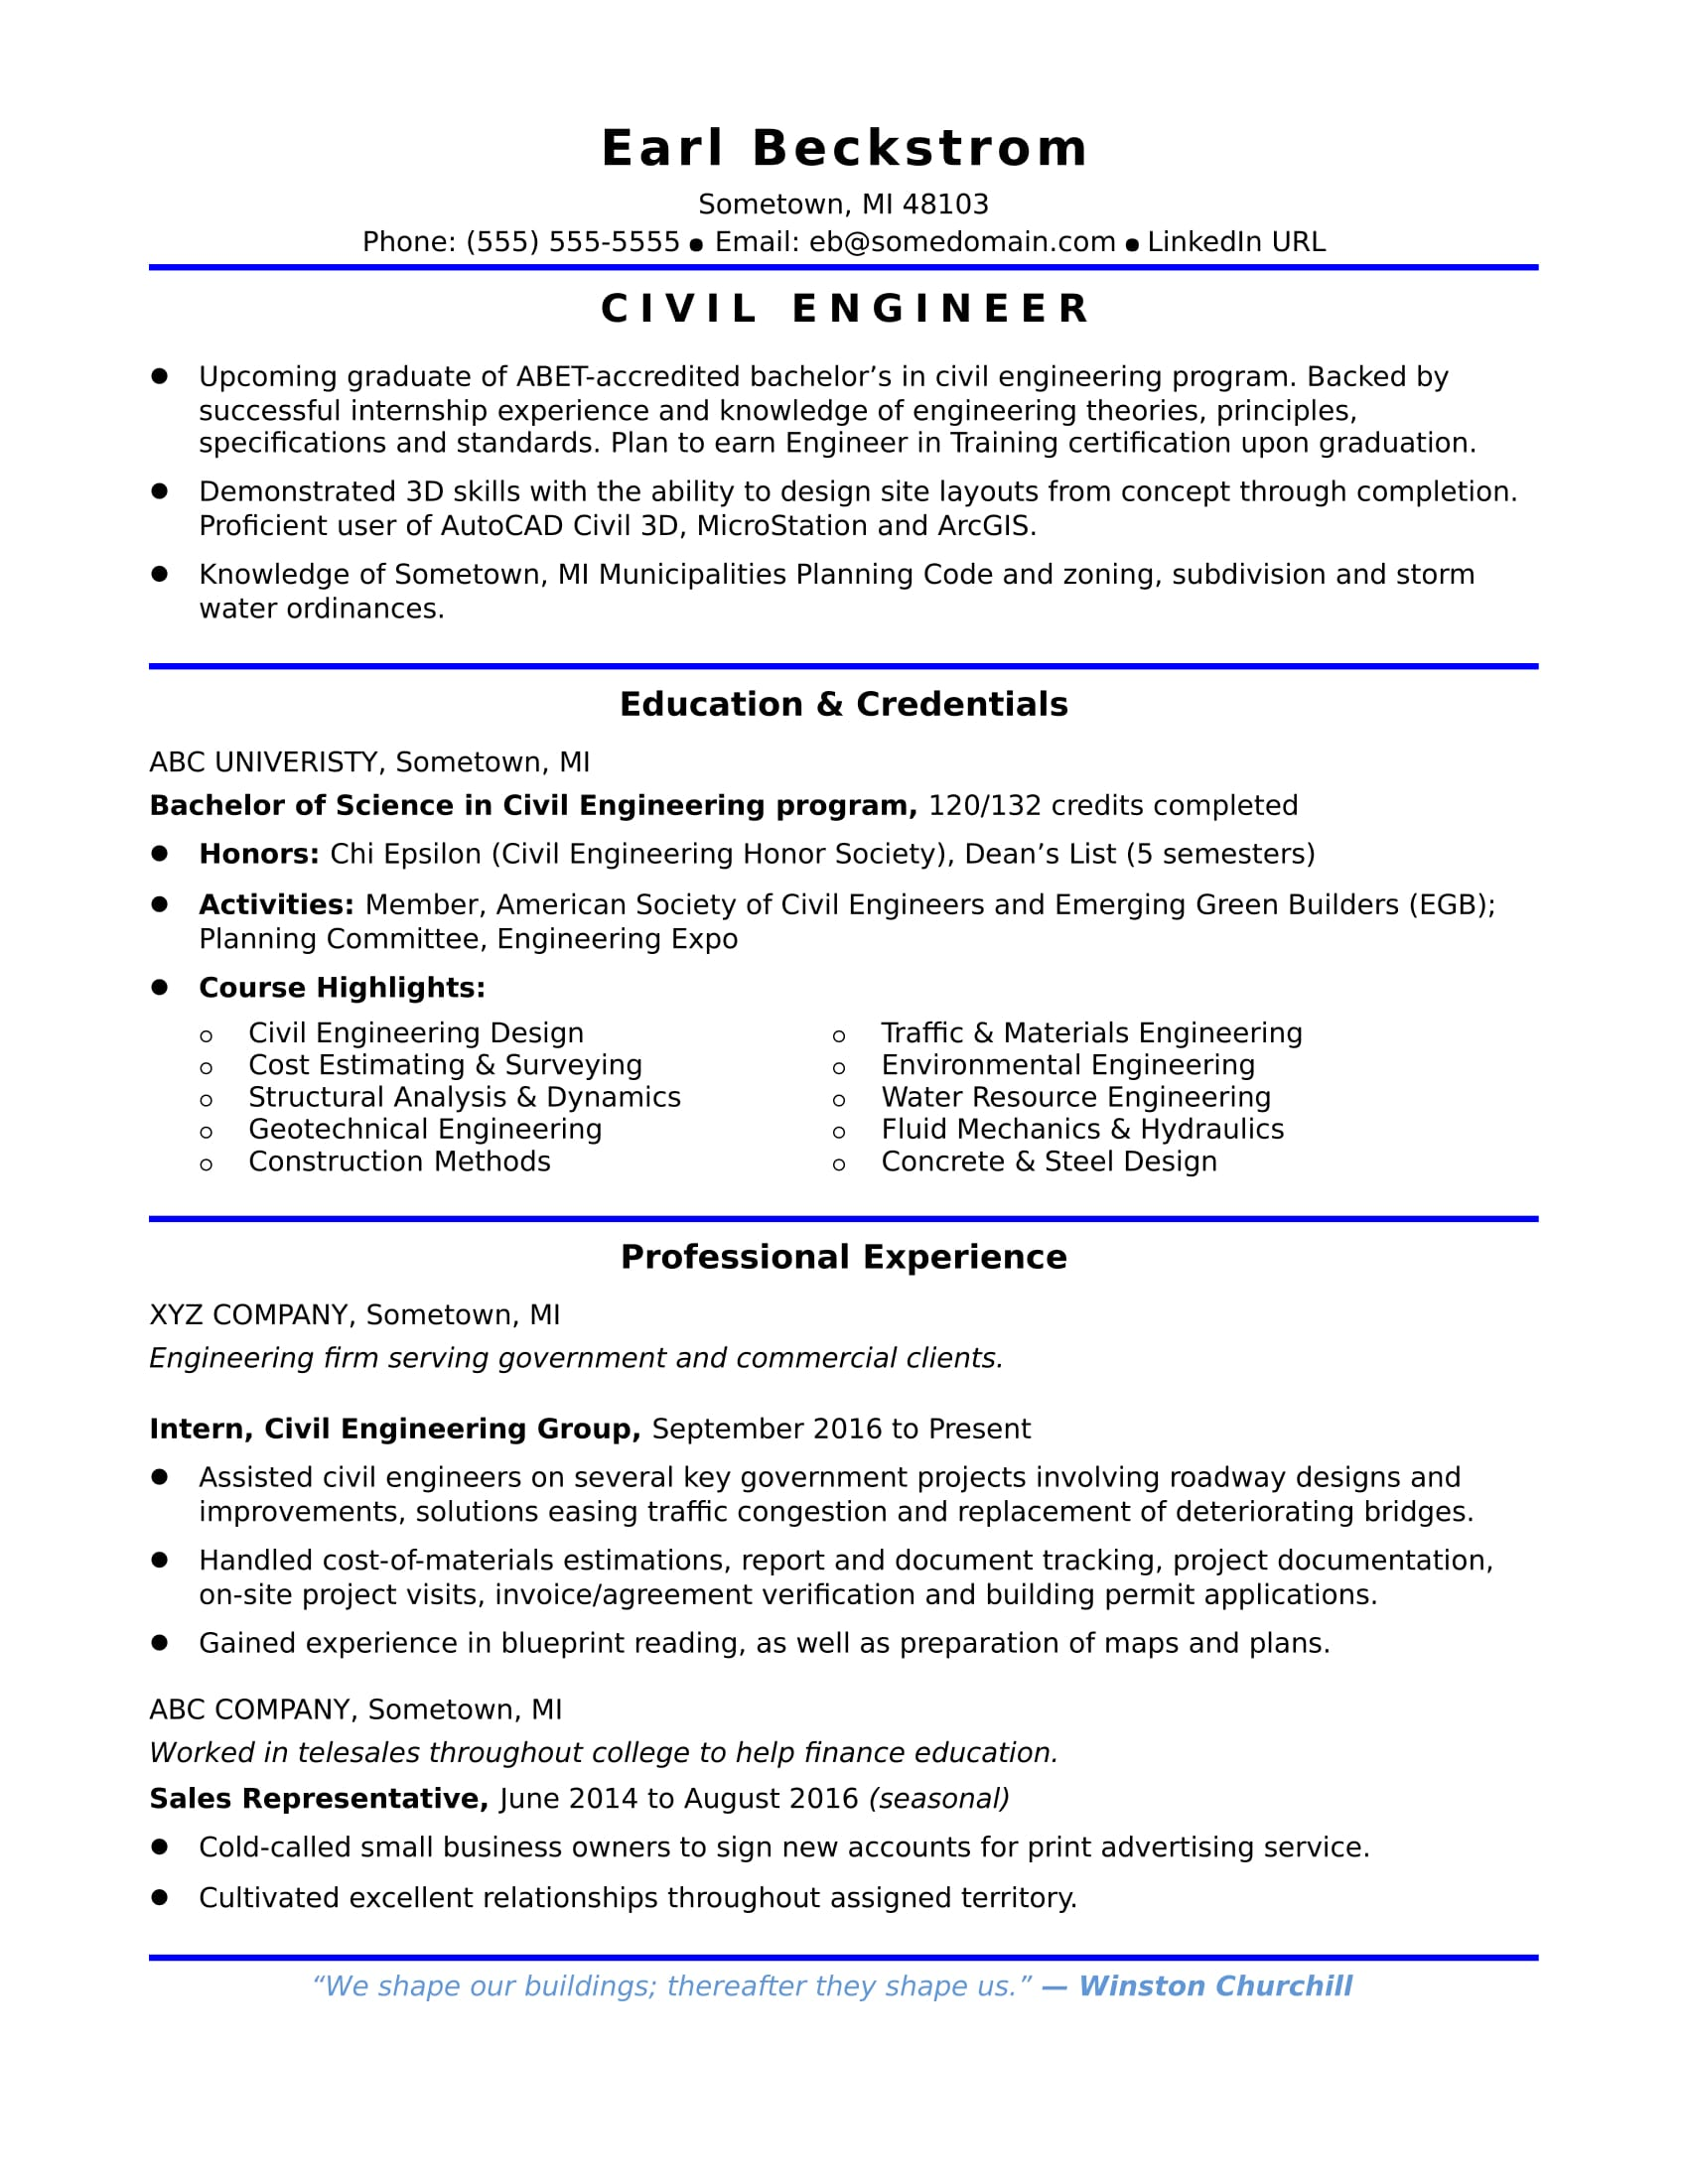 Sample Resume For An Entry Level Civil Engineer  Resume Example Engineer